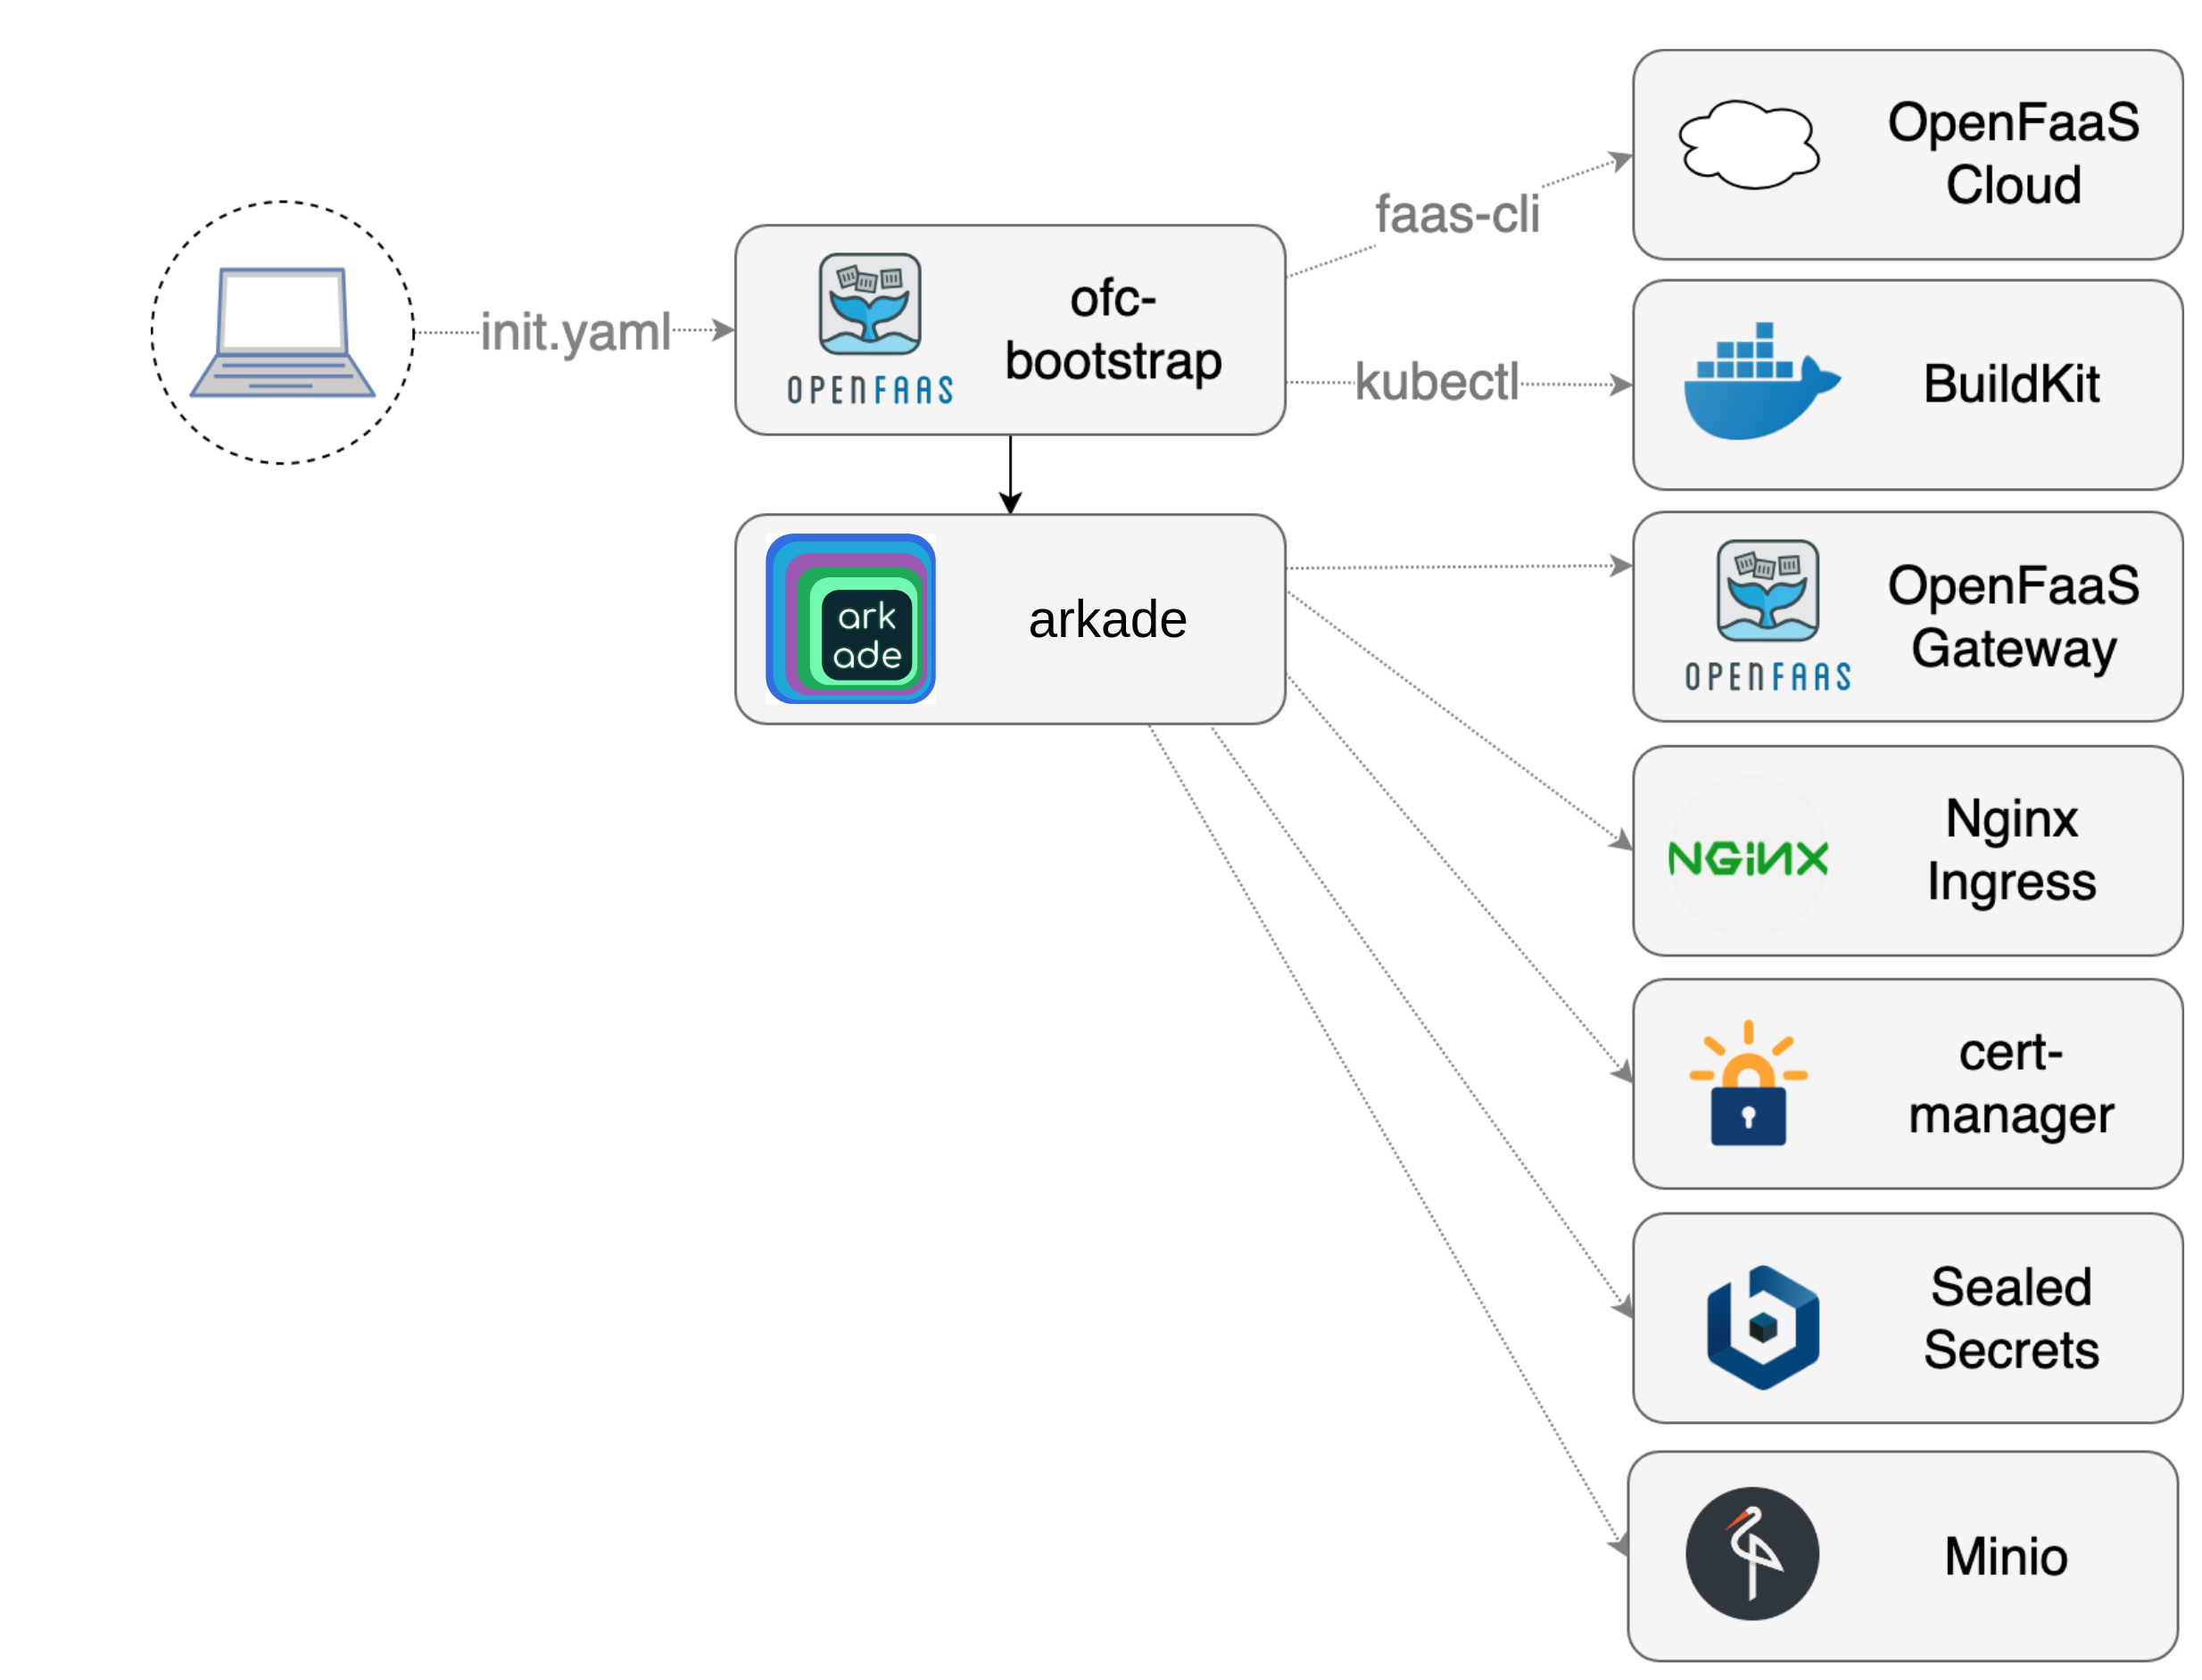 Build your own OpenFaaS Cloud with AWS EKS   OpenFaaS